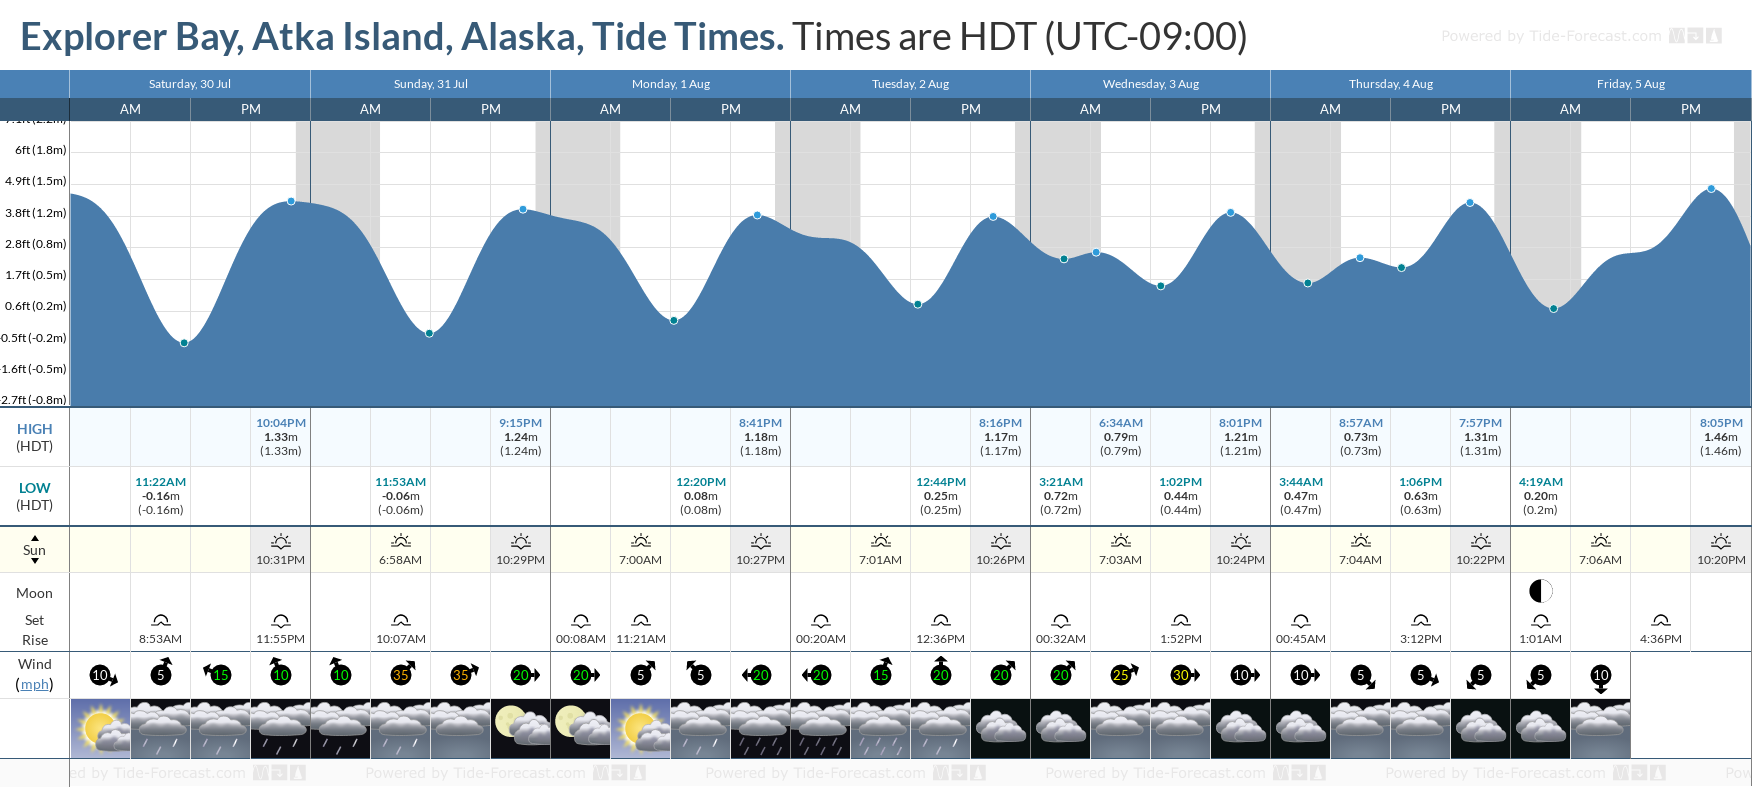 Explorer Bay, Atka Island, Alaska Tide Chart including high and low tide tide times for the next 7 days